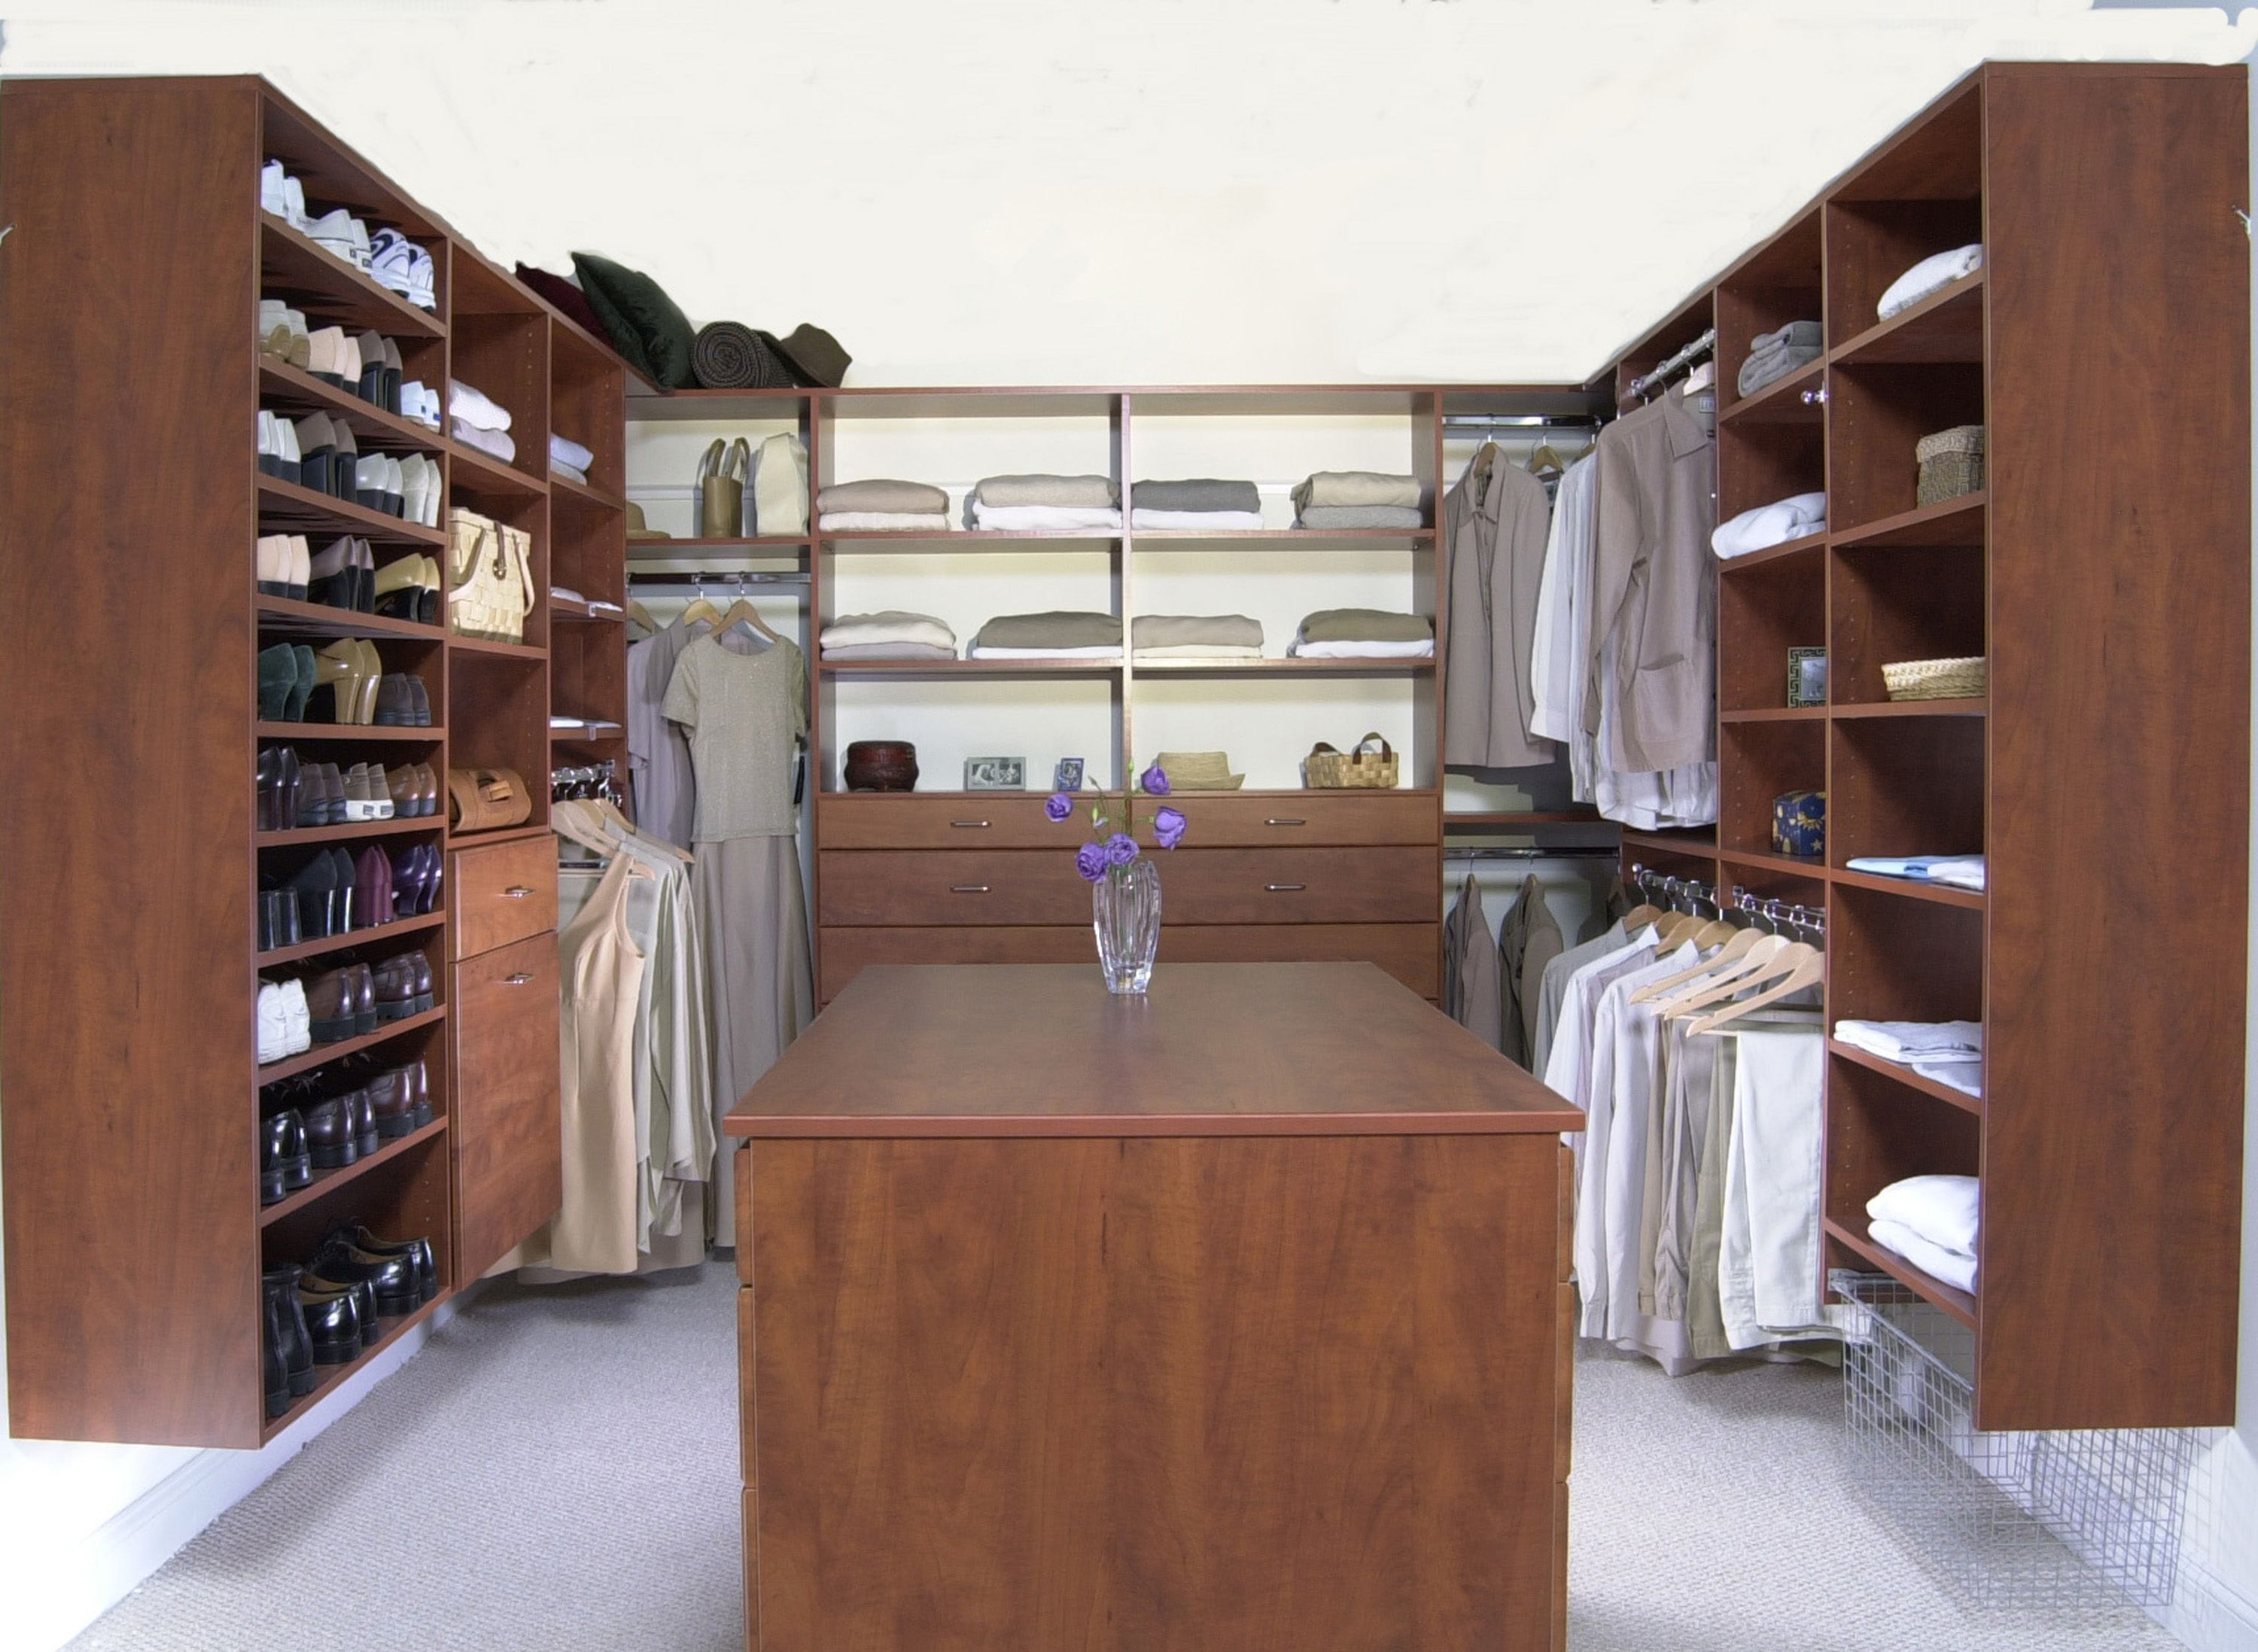 Walk In Closet Images closet walk in decor : california closets garage cost | closet